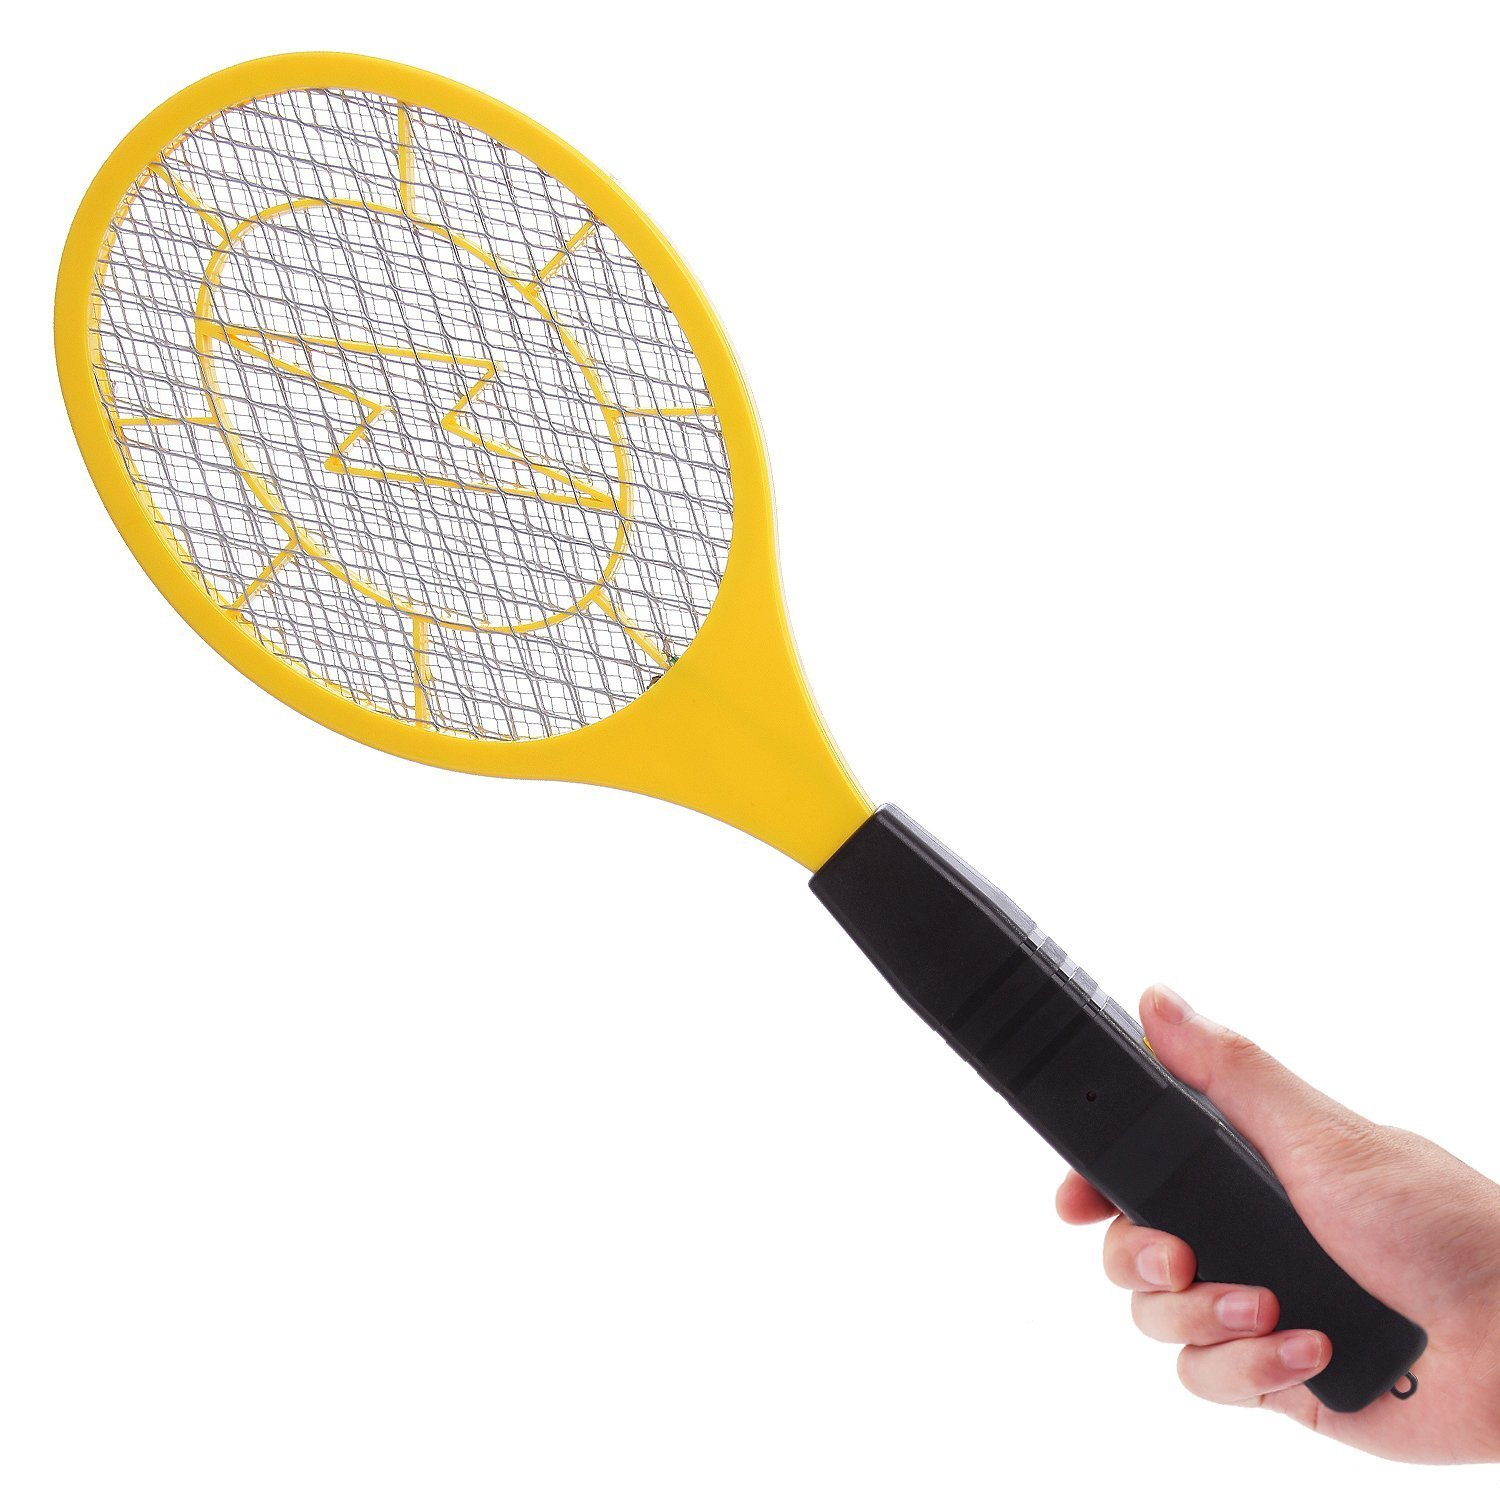 Bug zapper- Electric Fly Swatter ,handheld Insect Fly Killer, Mosquito Zapper against Flies,Bugs,Bees and Other Pest,Unique 3-Layer Safety Mesh Safe to Touch for Indoor and Outdoor Pest Control by Henscoqi (Image #2)